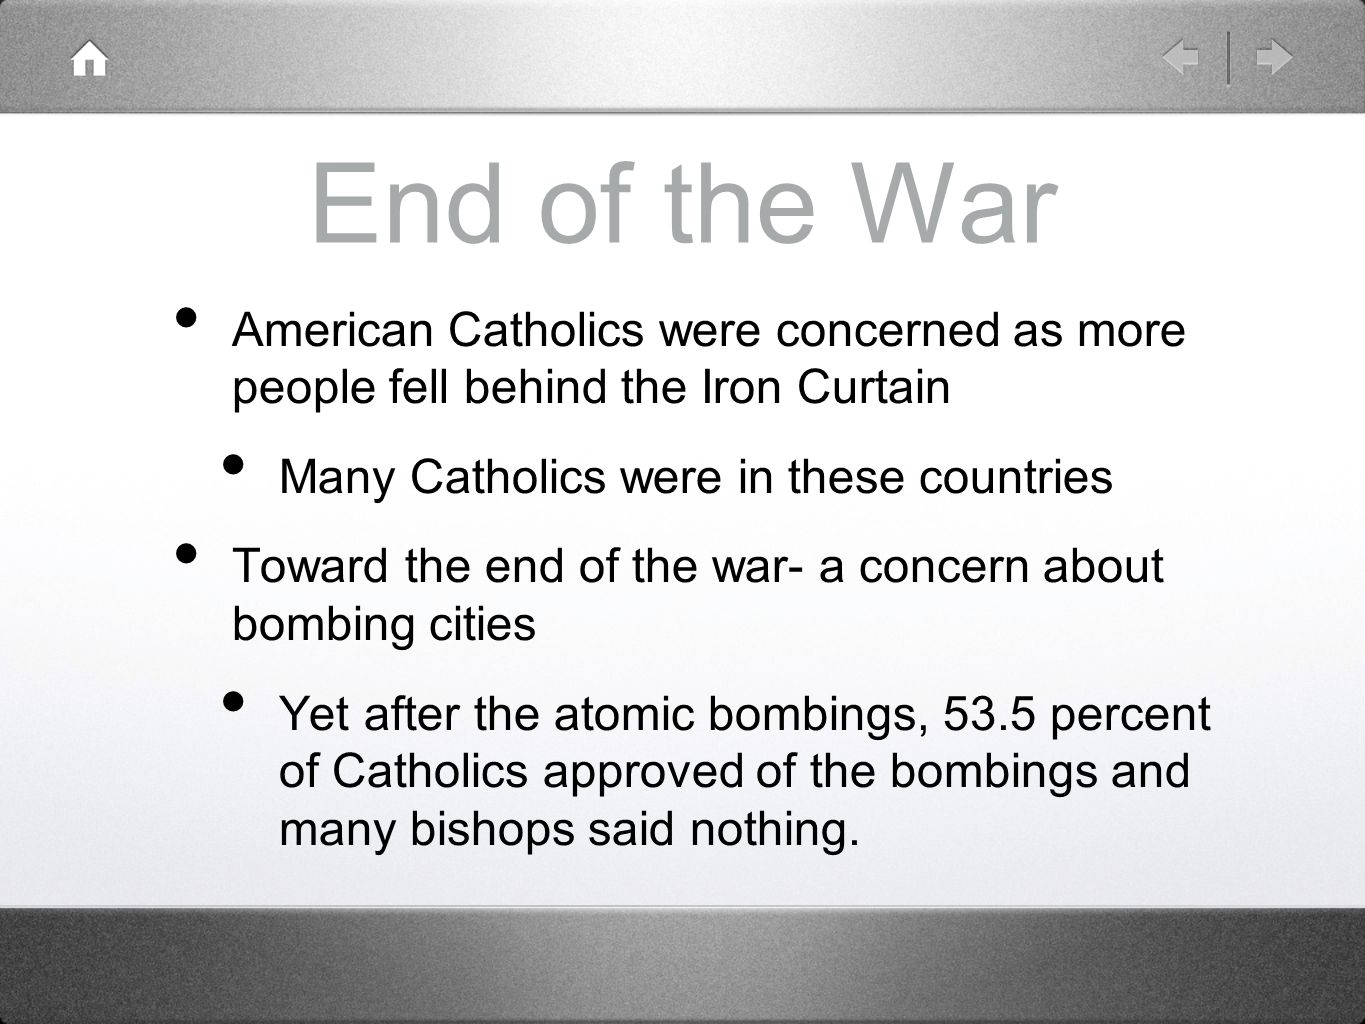 End of the War American Catholics were concerned as more people fell behind the Iron Curtain. Many Catholics were in these countries.